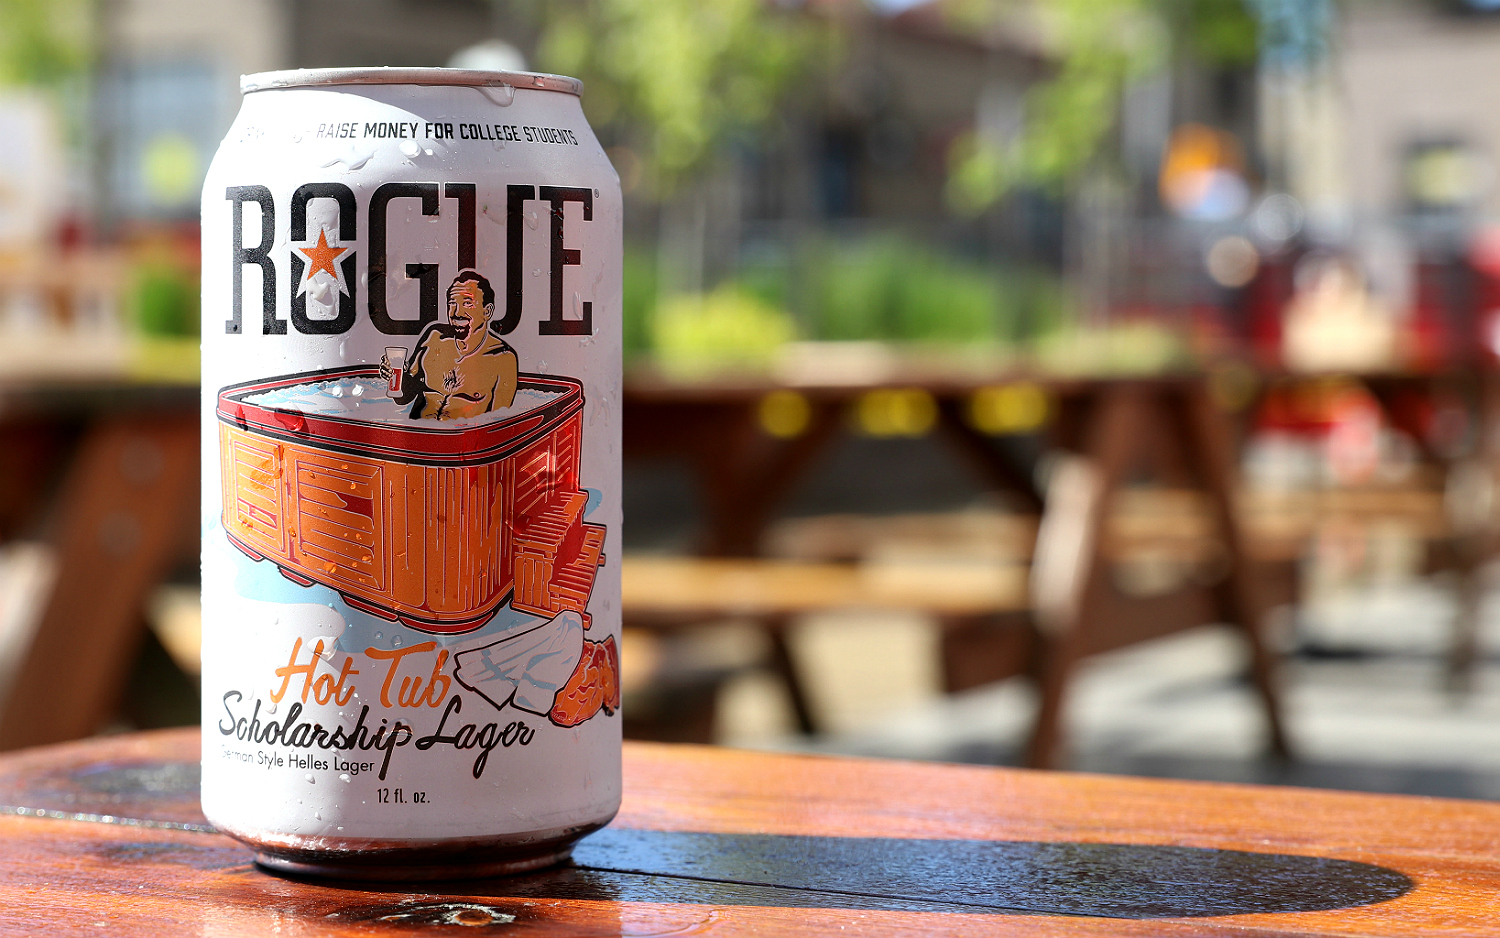 Rogue Hot Tub Scholarship Lager